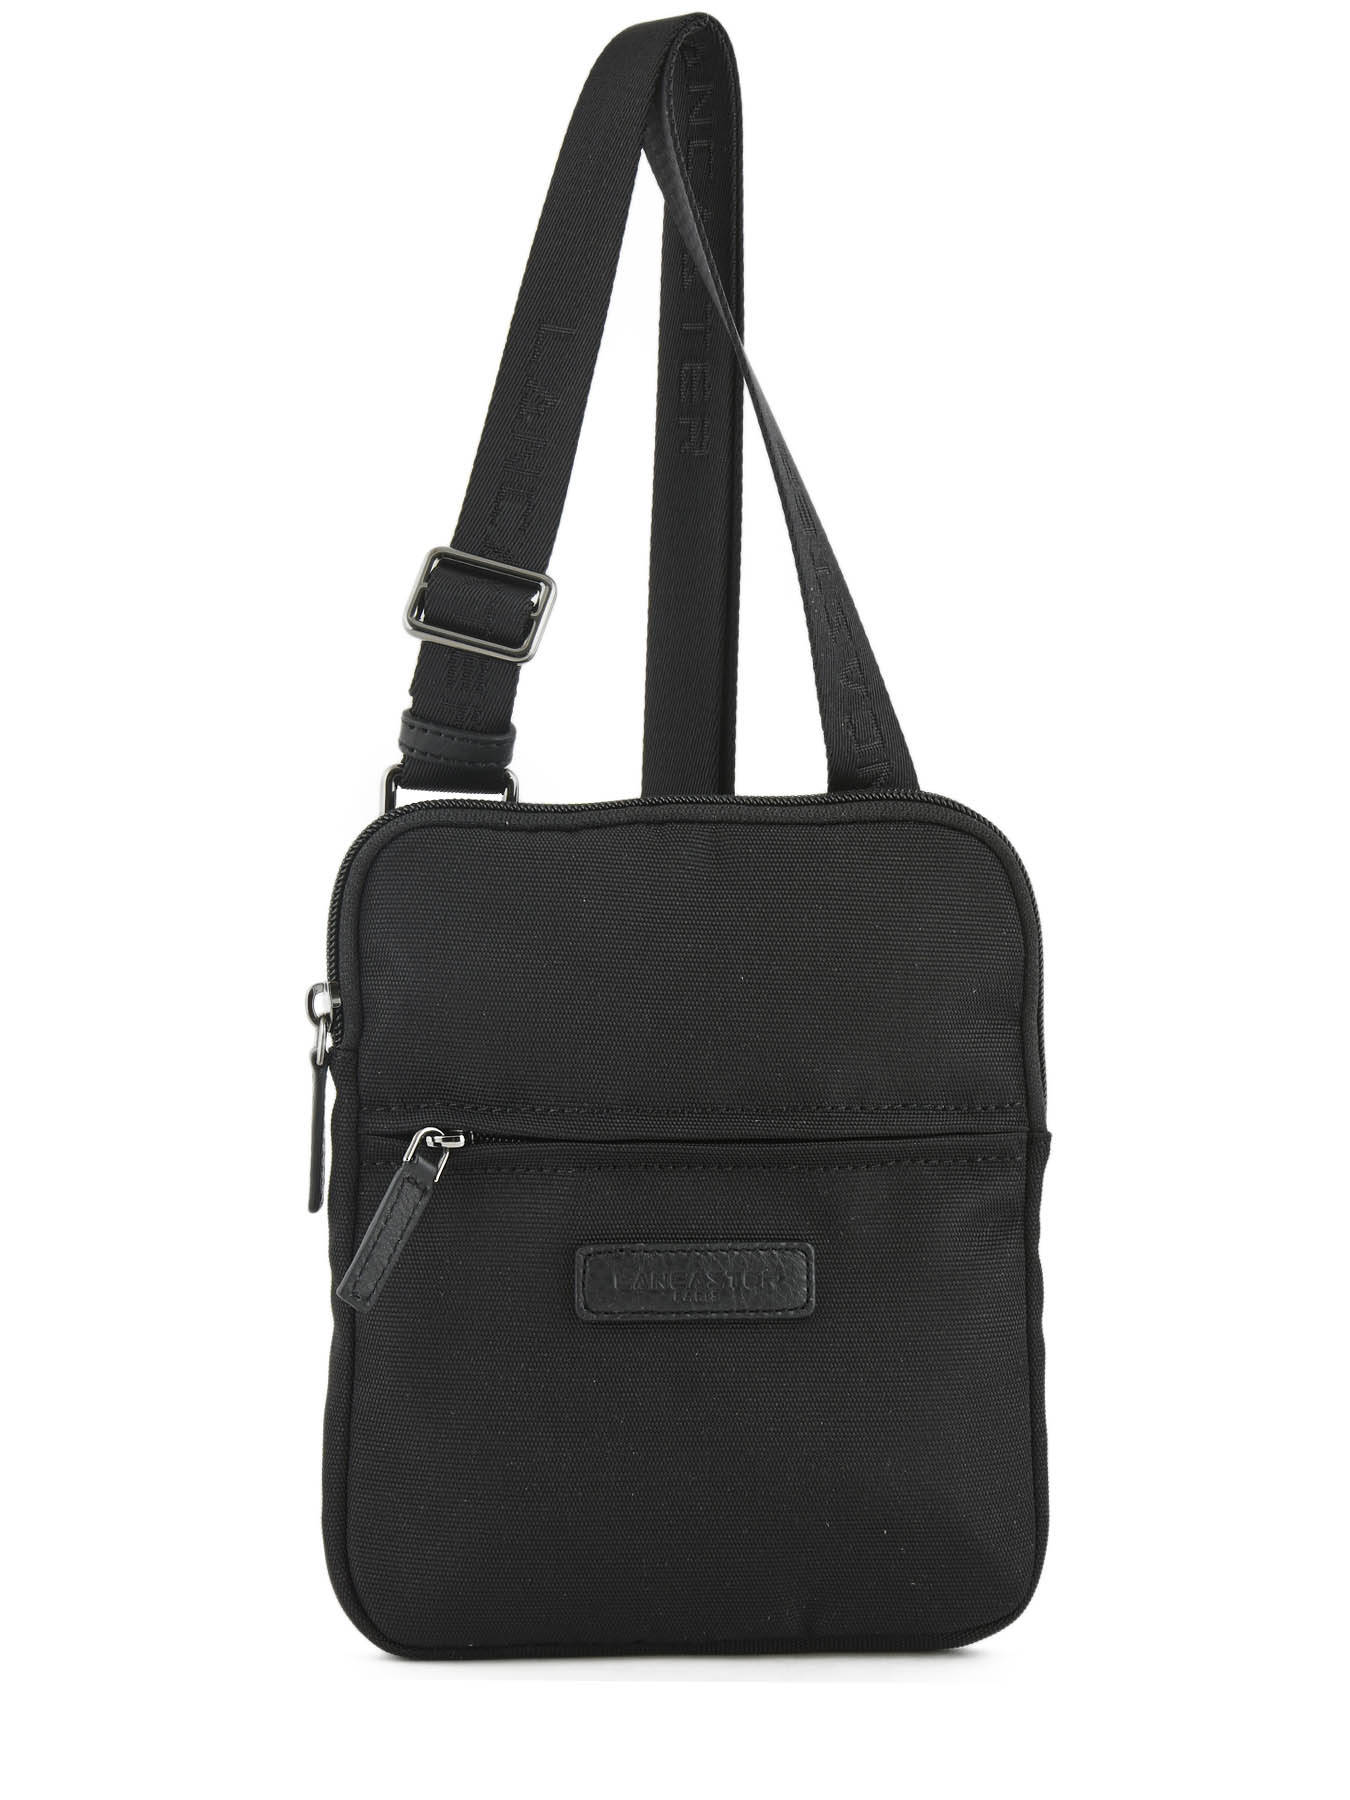 d643301a37 ... Crossbody Bag Lancaster Black smart 305-17 ...